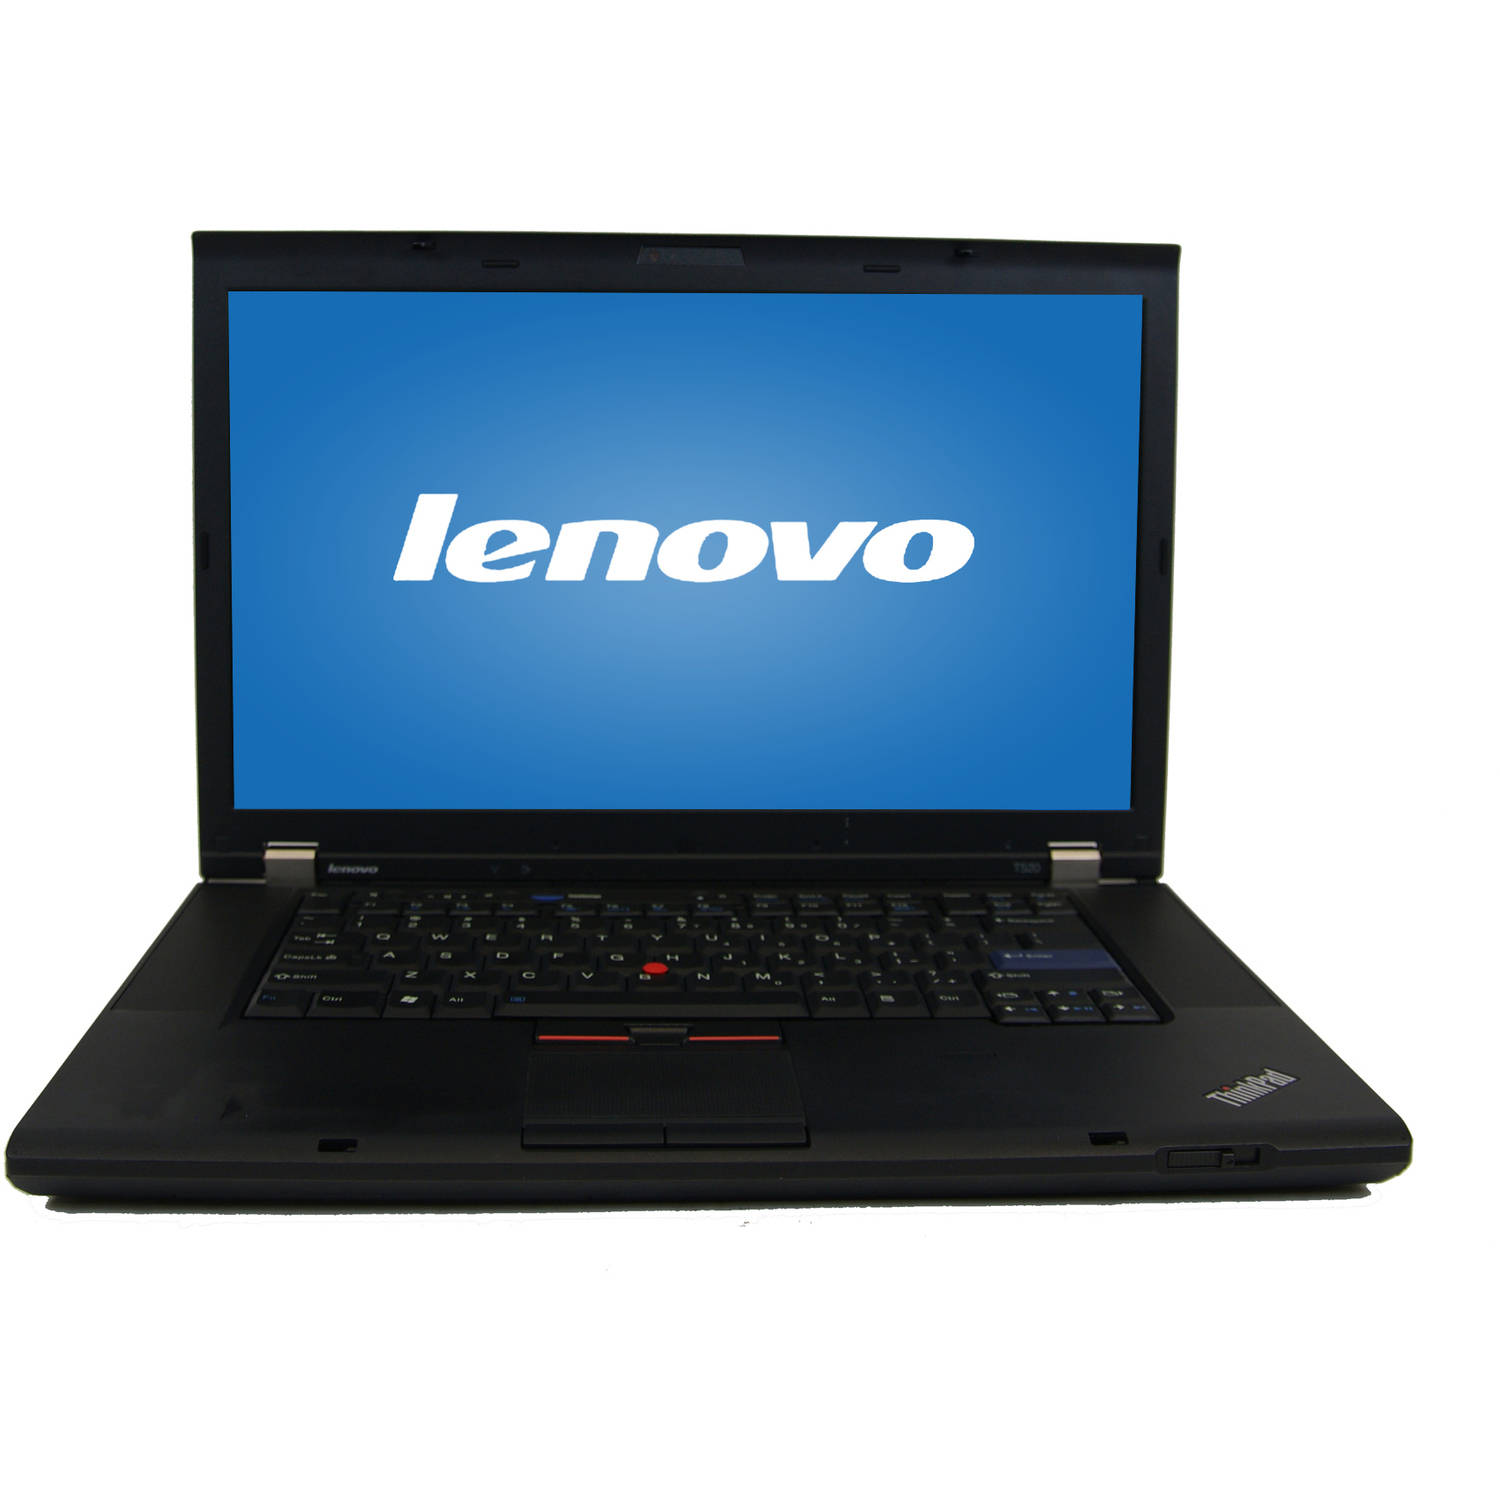 "Refurbished Lenovo Black 15.6"" Thinkpad T520 Laptop PC with Intel Core i5-2520M Processor, 16GB Memory, 256GB SSD and Windows 7 Professional"